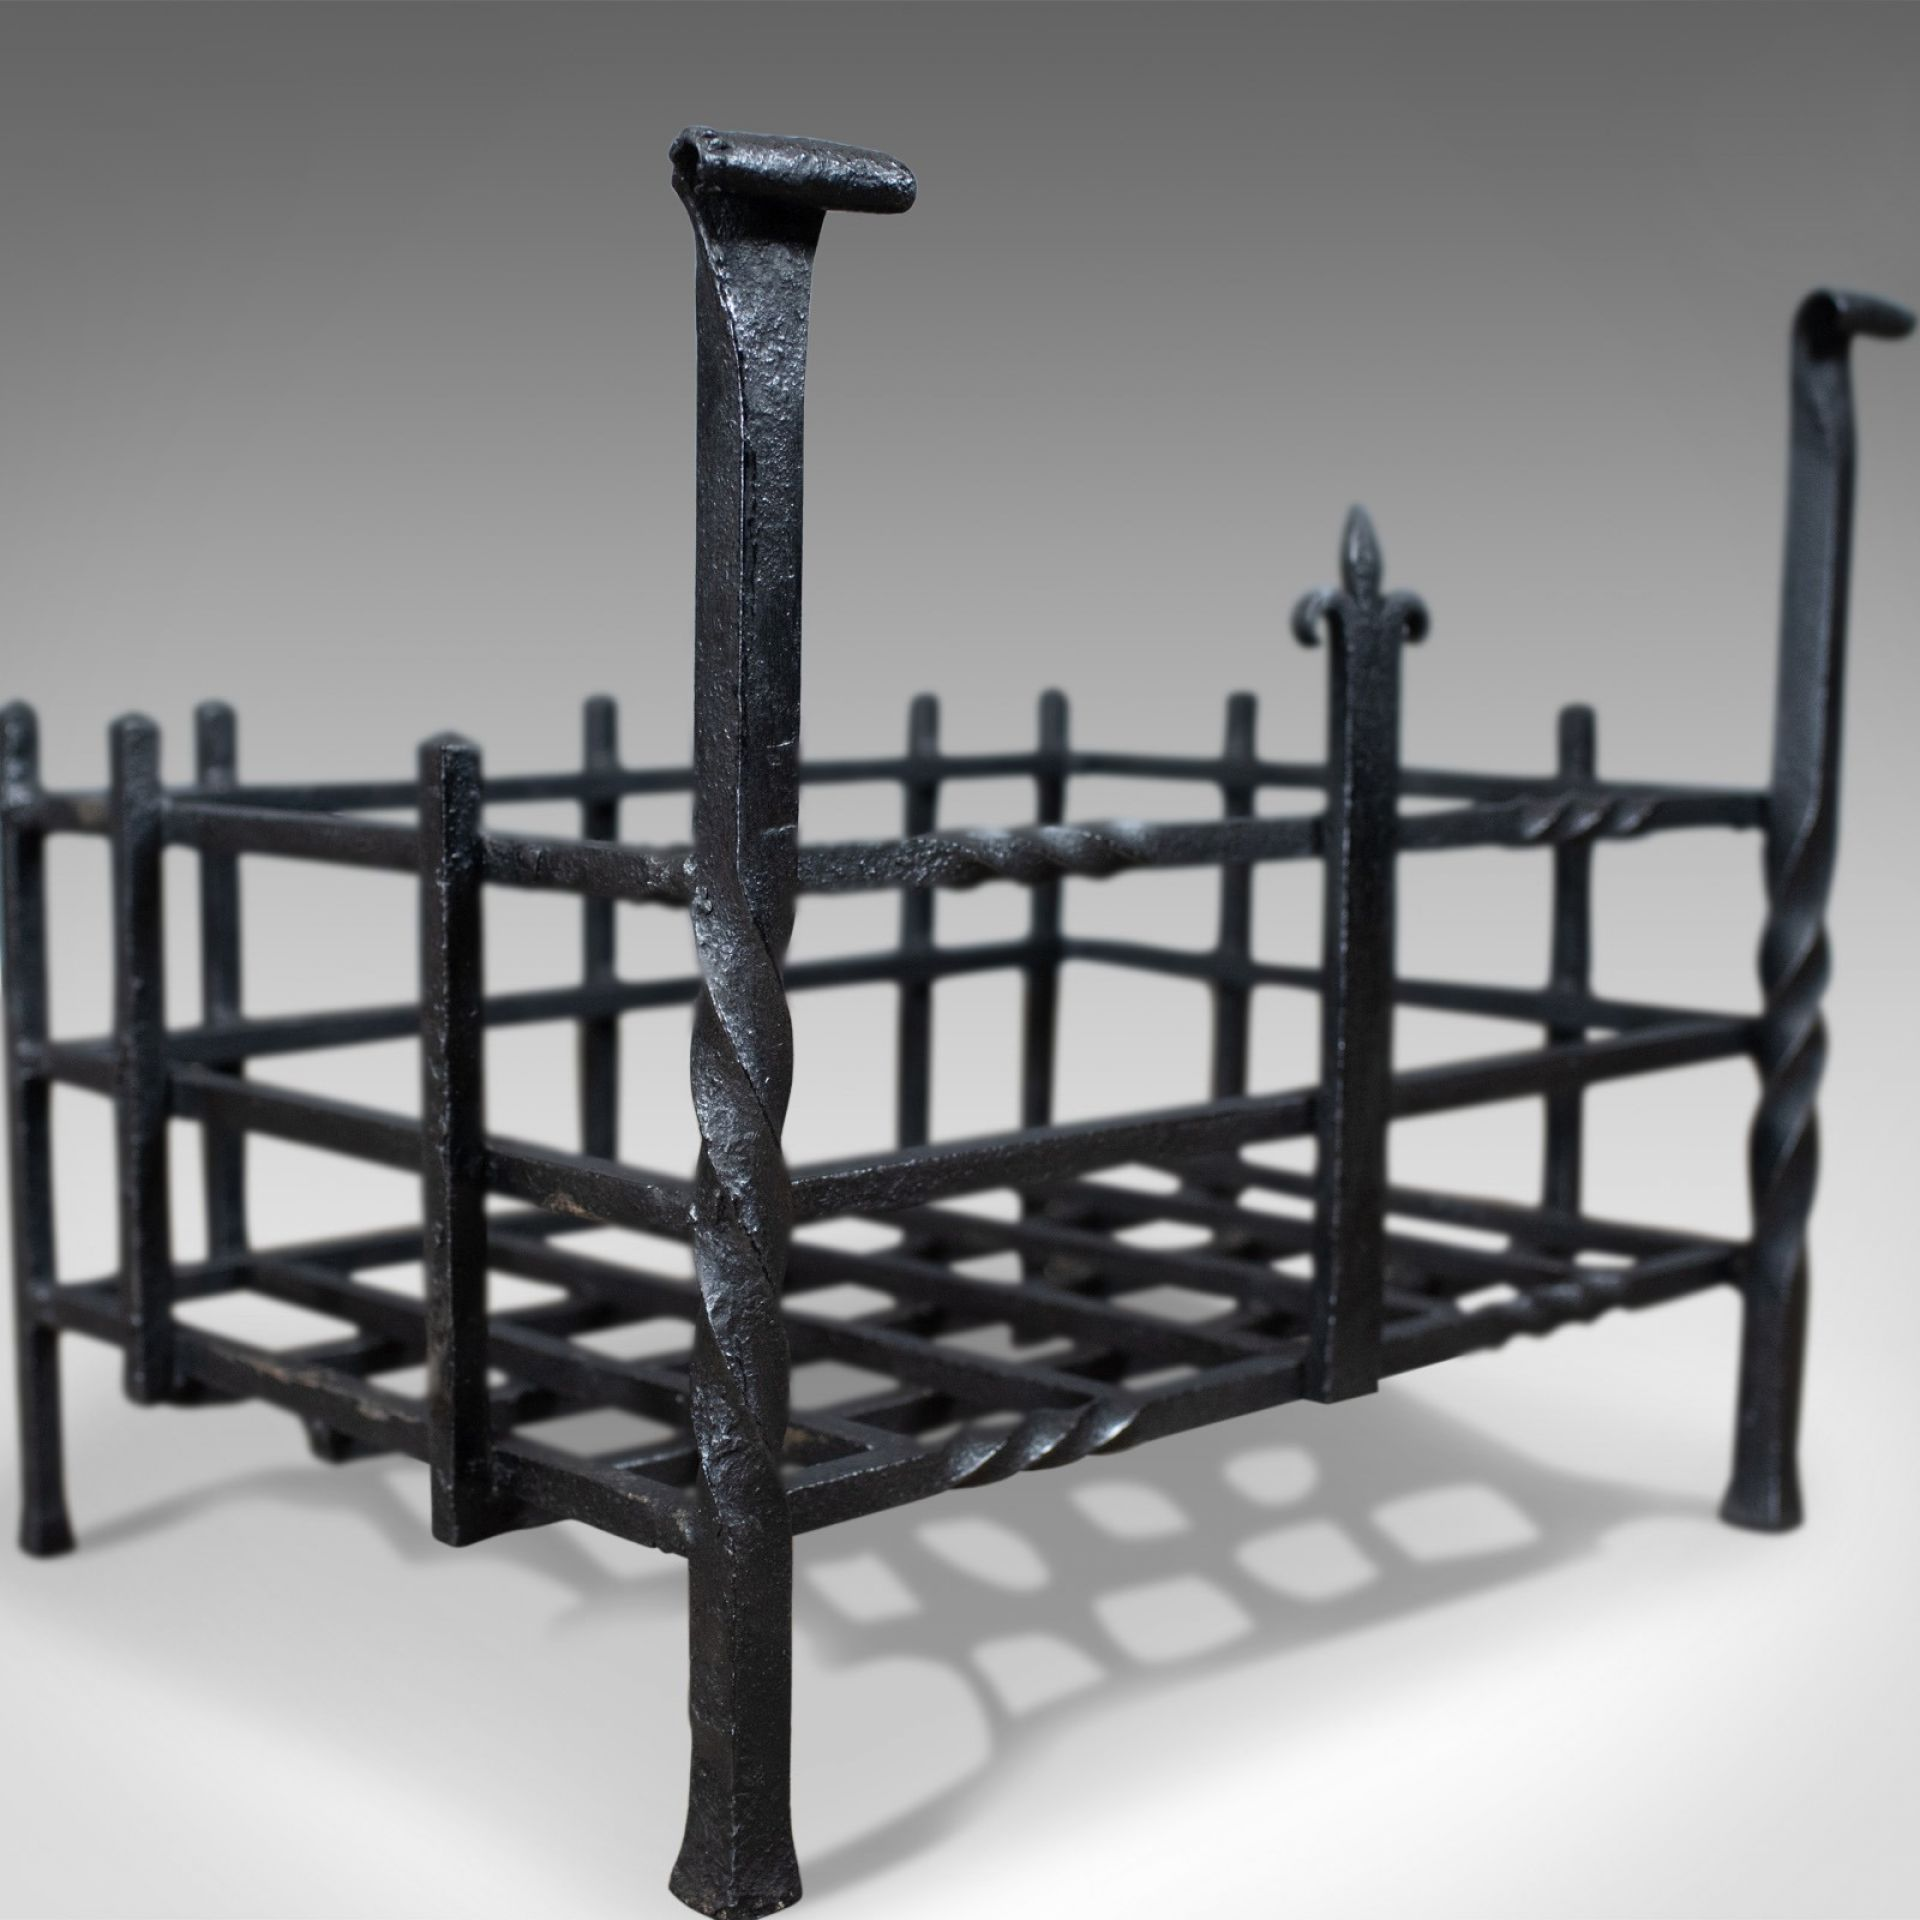 Antique Fire Basket, Gothic, Free Standing, Forged Iron, Fireplace Grate c.1900